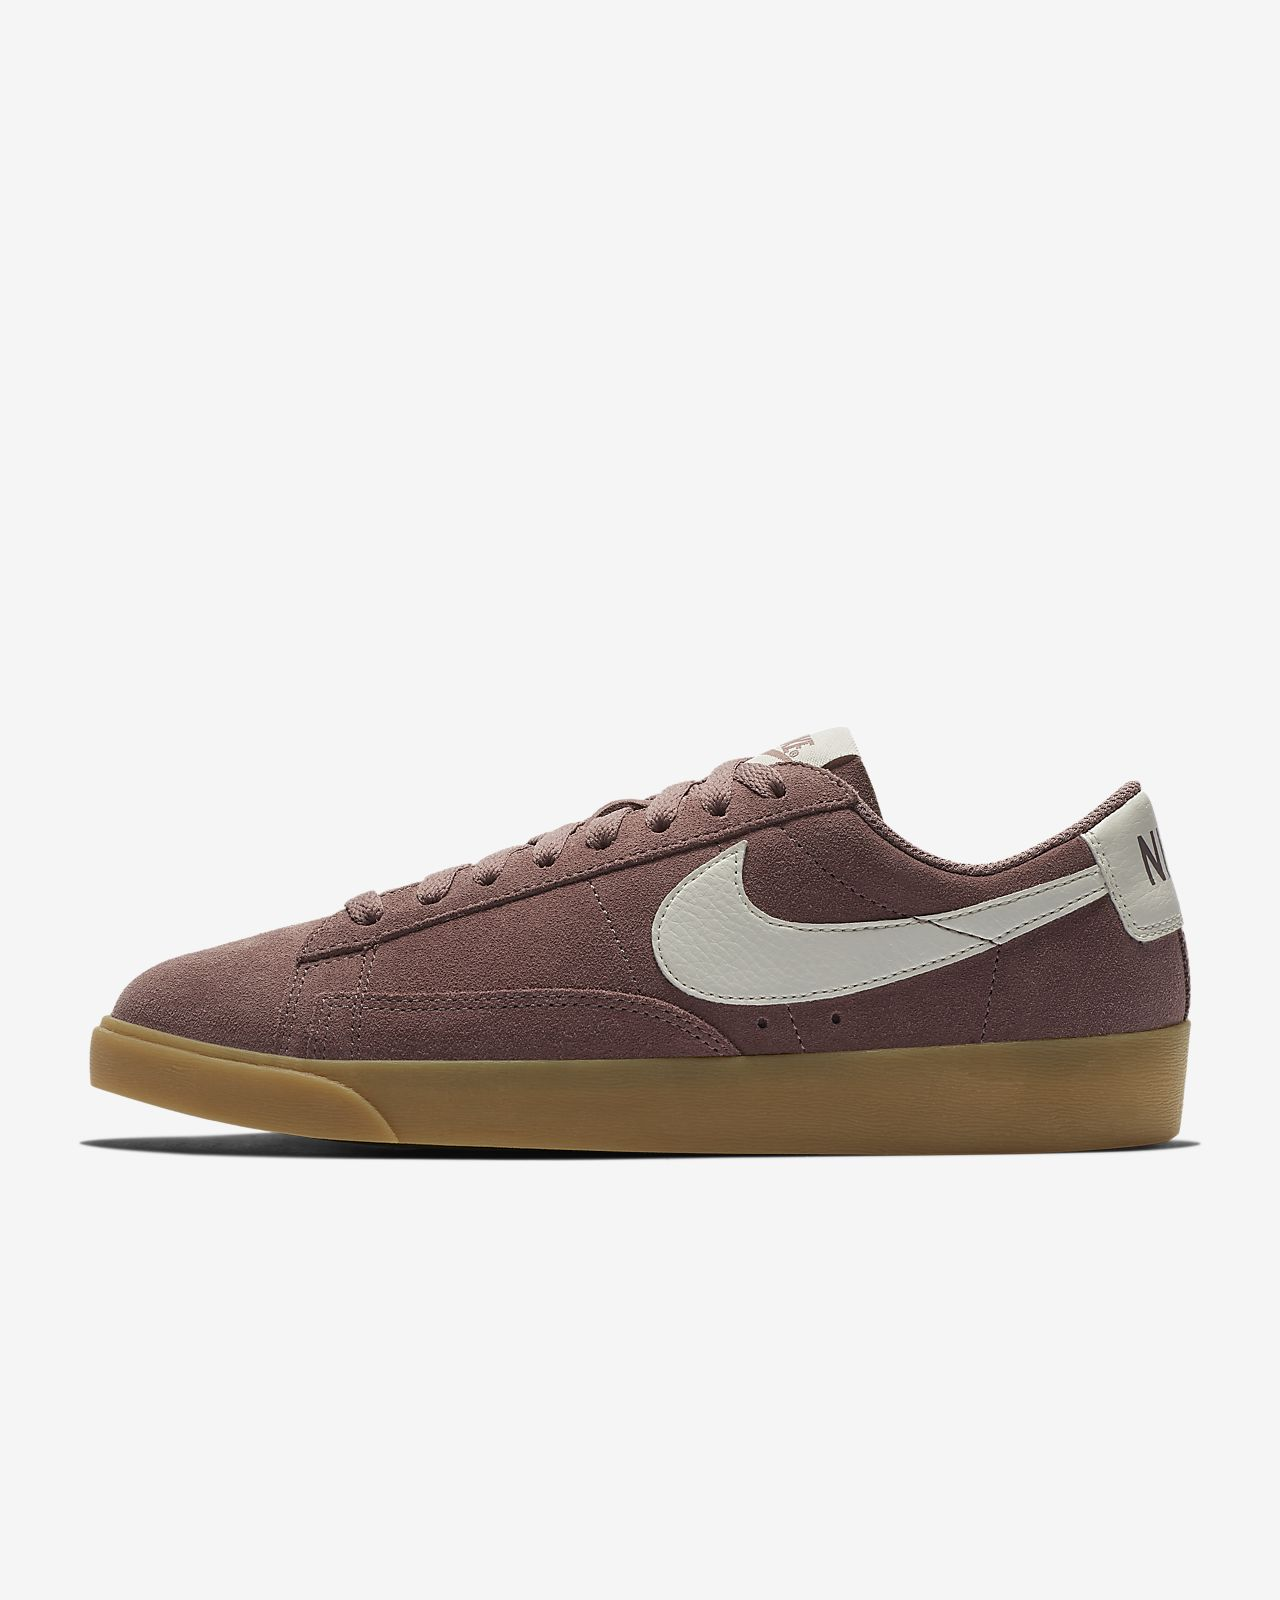 2505bc1d8d4f30 nike blazer low suede